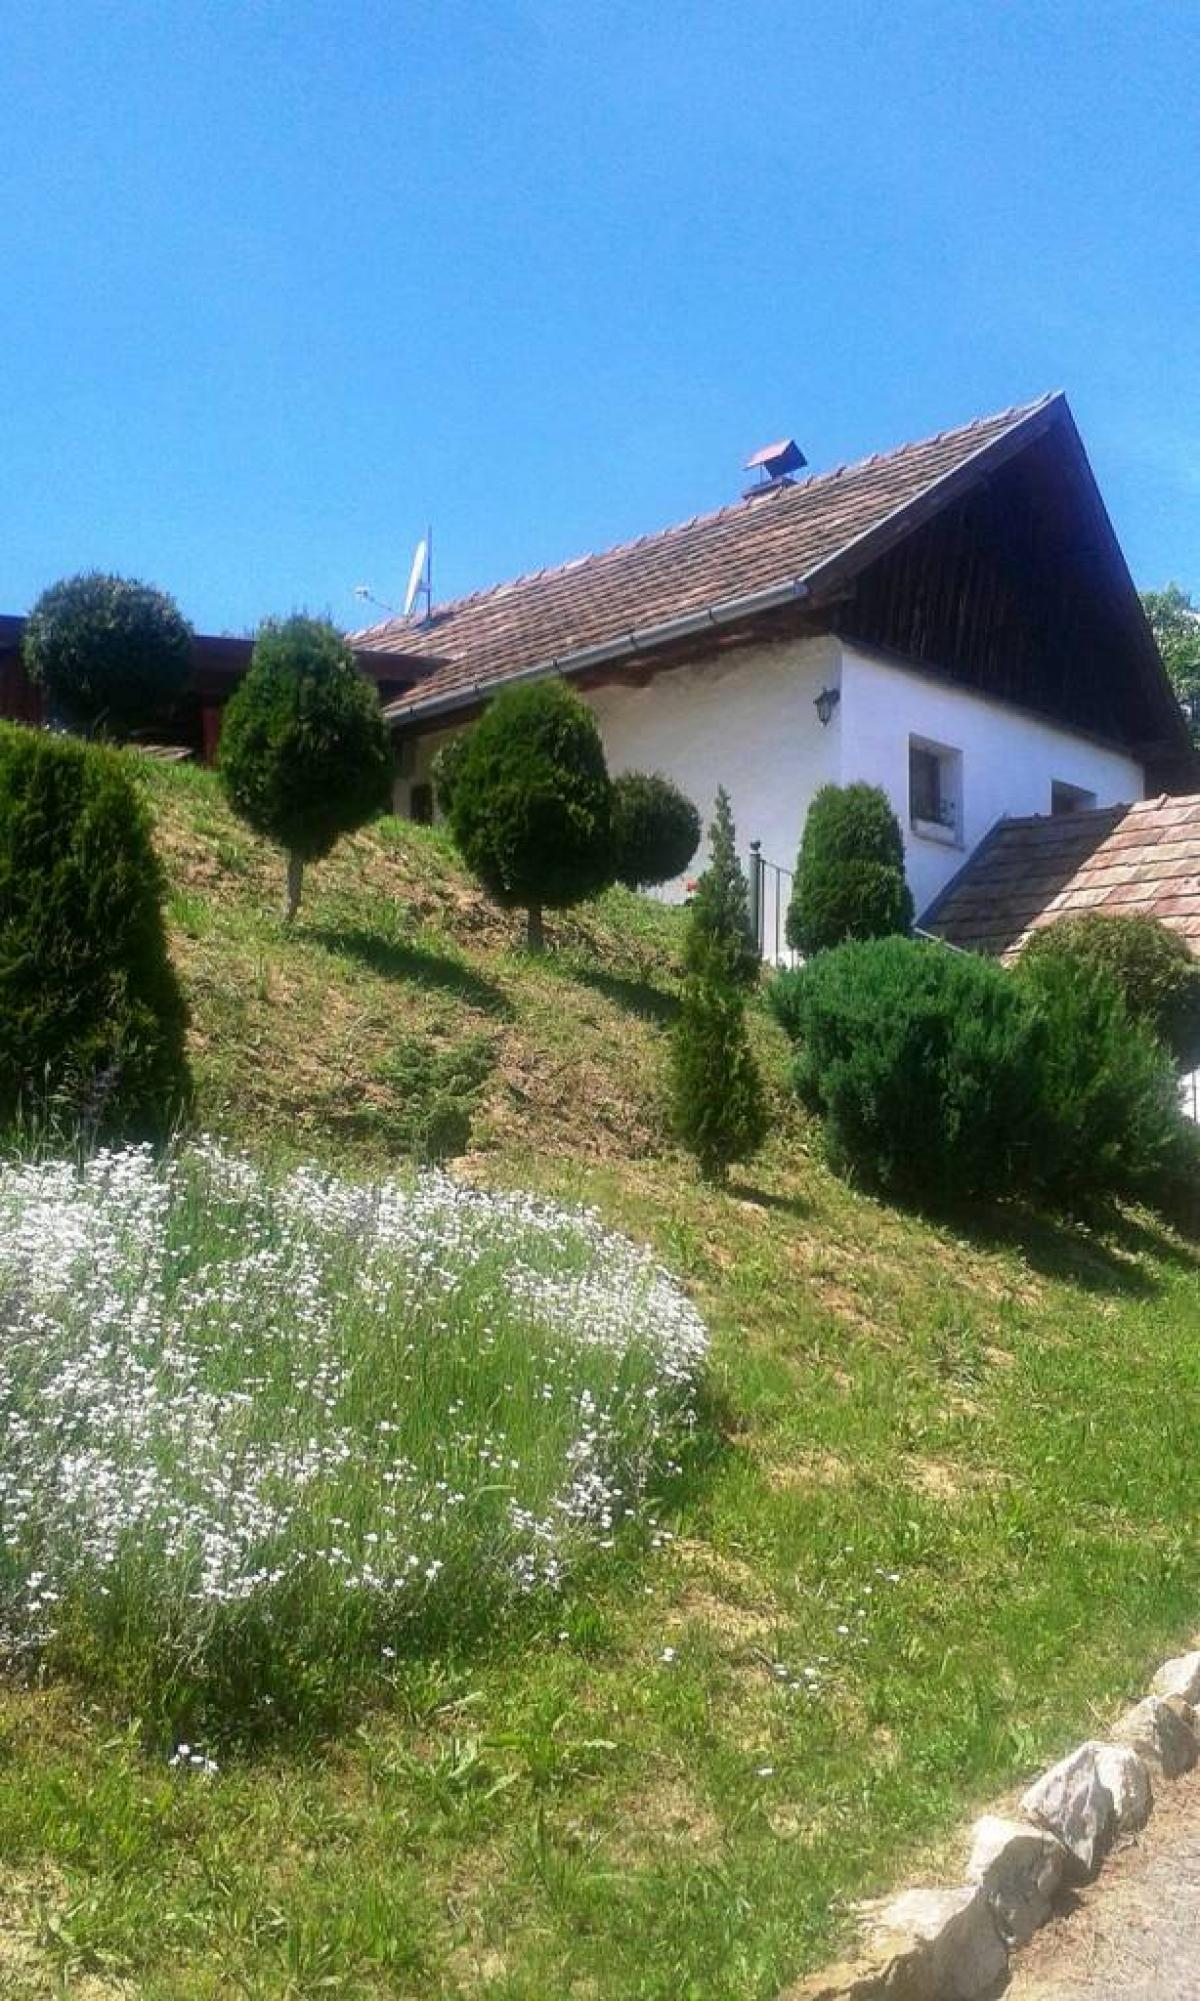 Property listed For Sale in Zalaegerszeg, Hungary